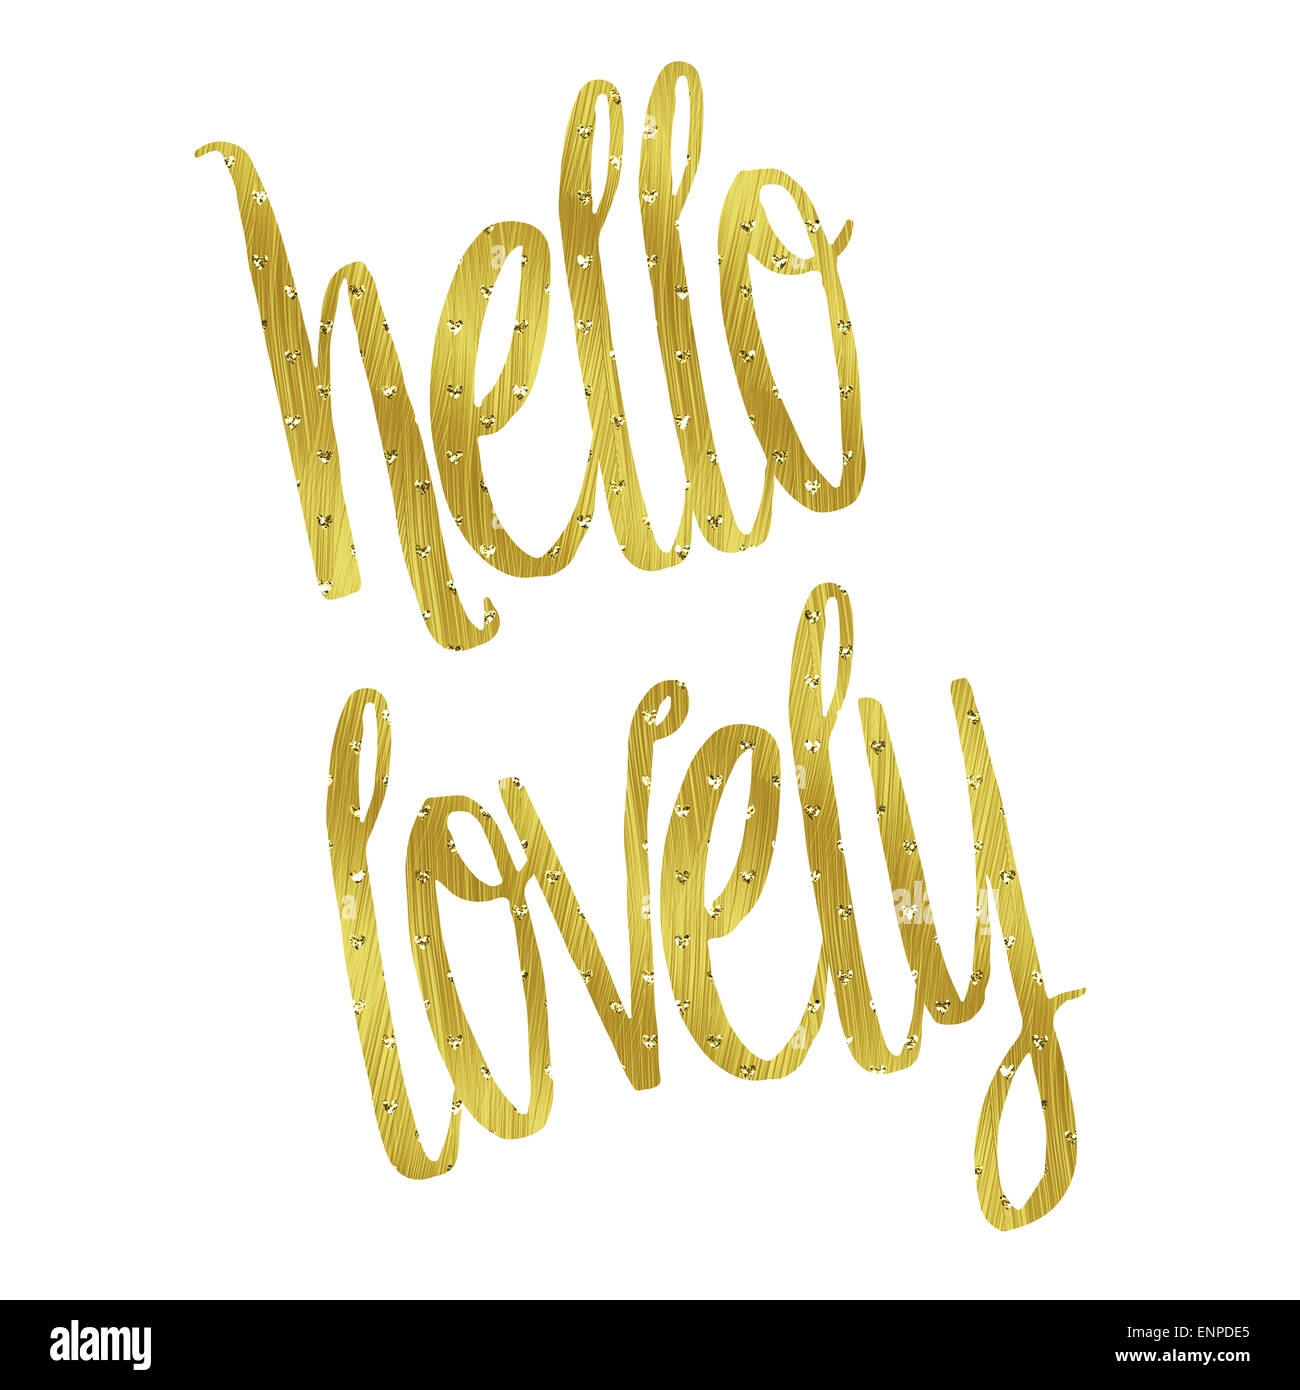 Lovely Hello Lovely Gold Faux Foil Metallic Glitter Inspirational Quote Isolated  On White Background   Stock Image